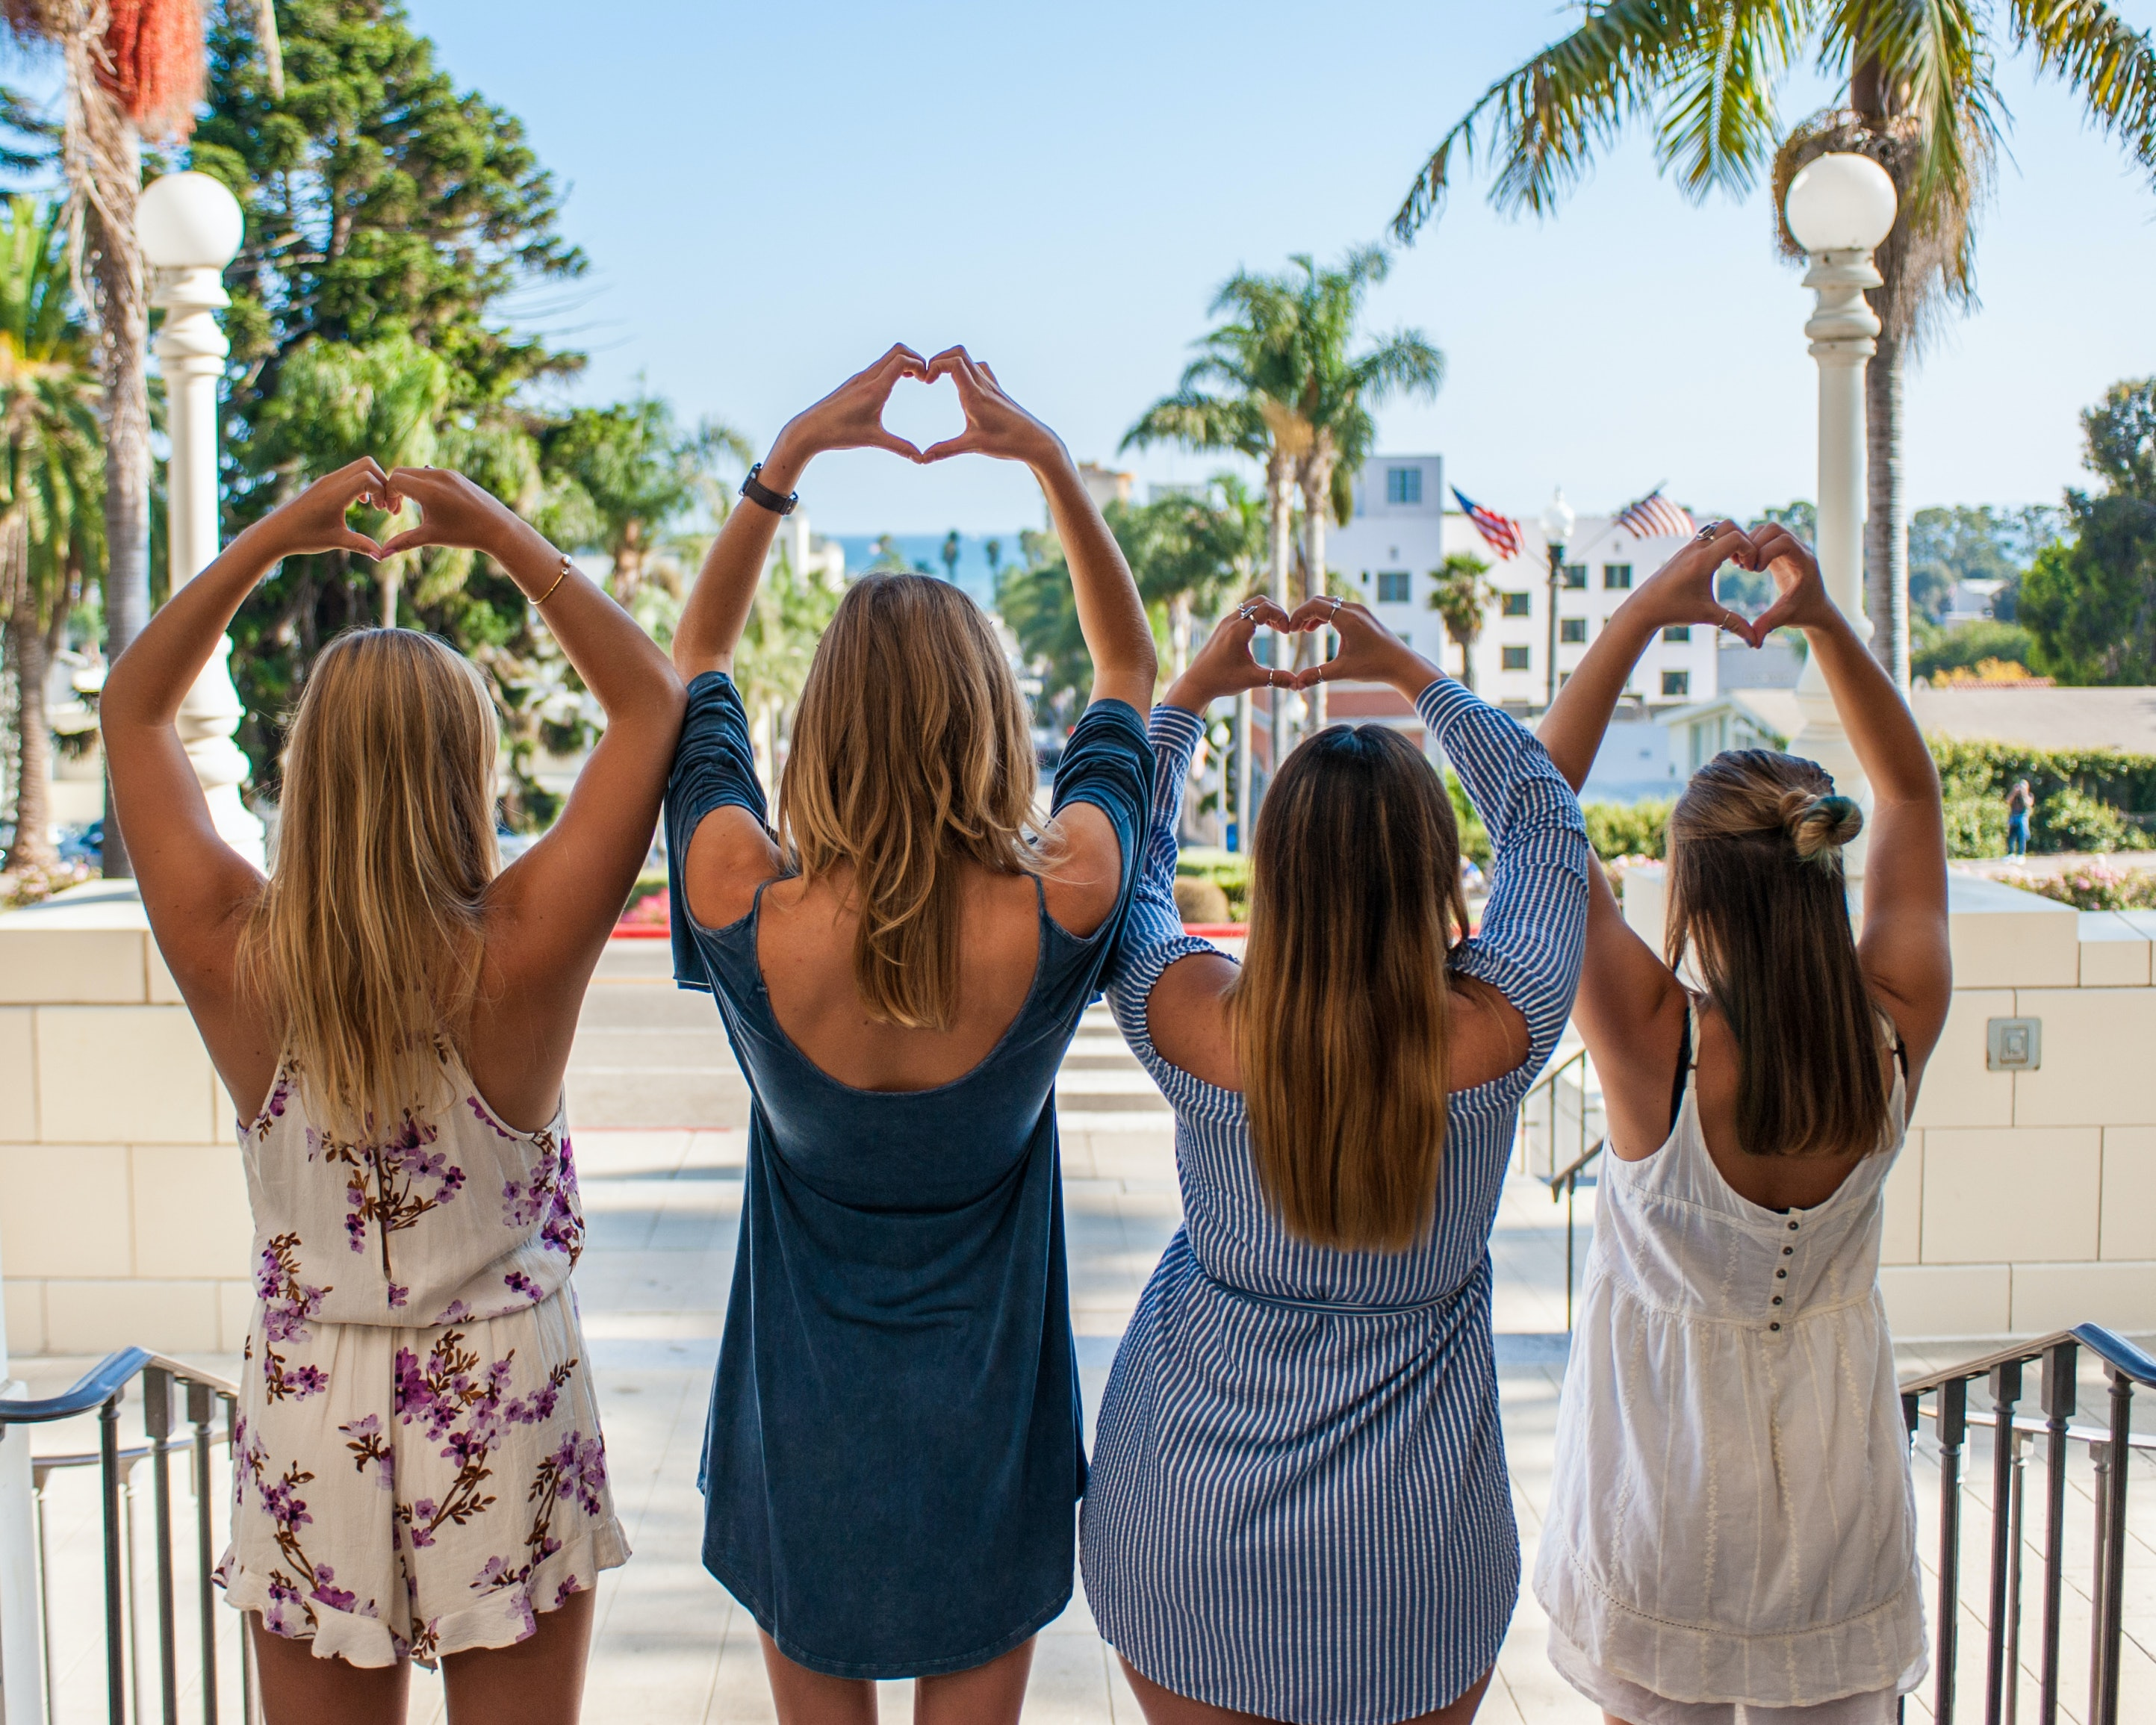 20 Instagram Captions For Sorority Pictures To Show How Much ...